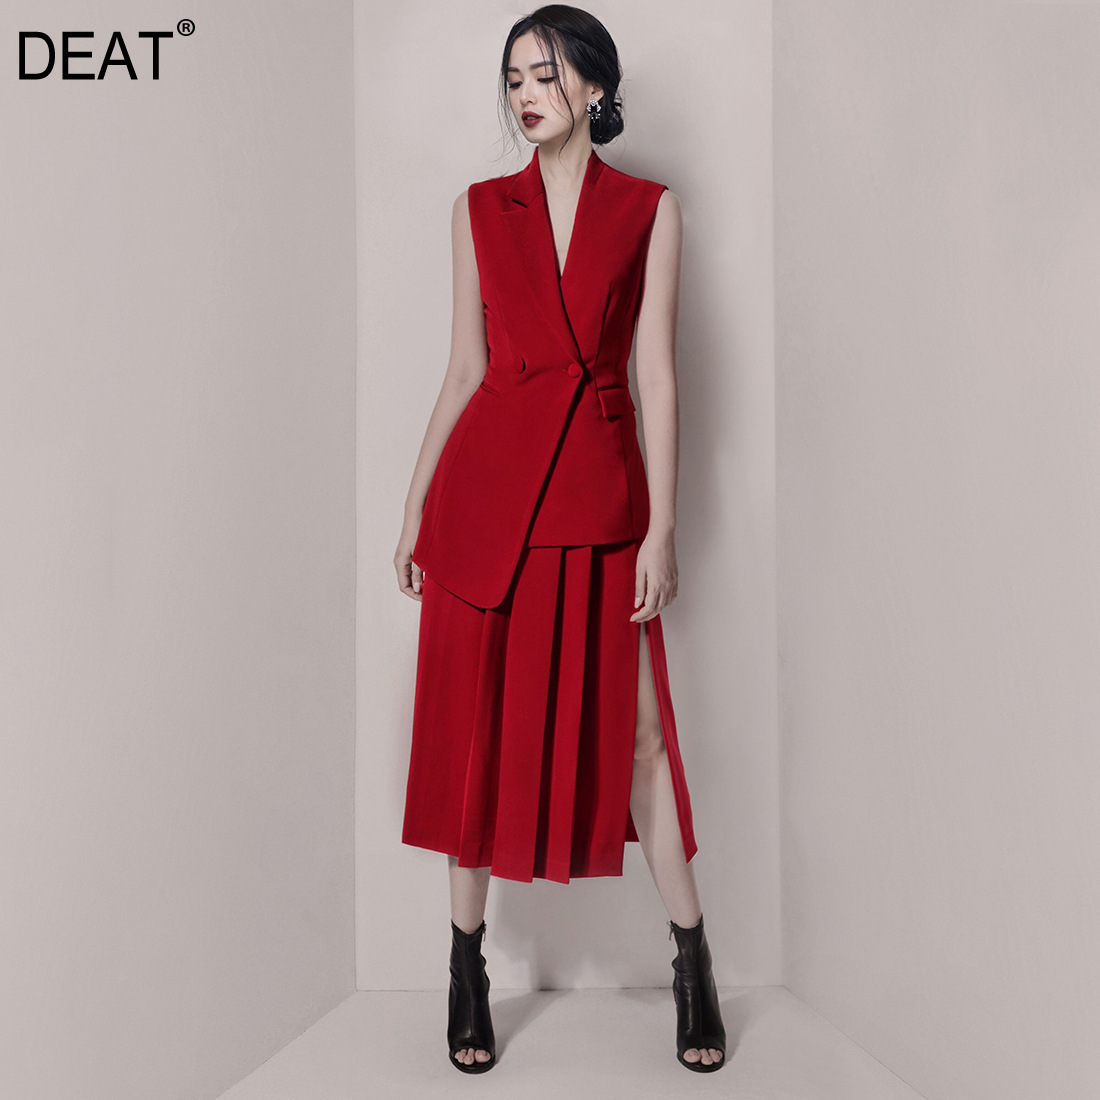 DEAT 2019 Spring New Lapel Sleeveless Double breasted Shirt Pleated Split Wine Red Skirt Fashion Sexy